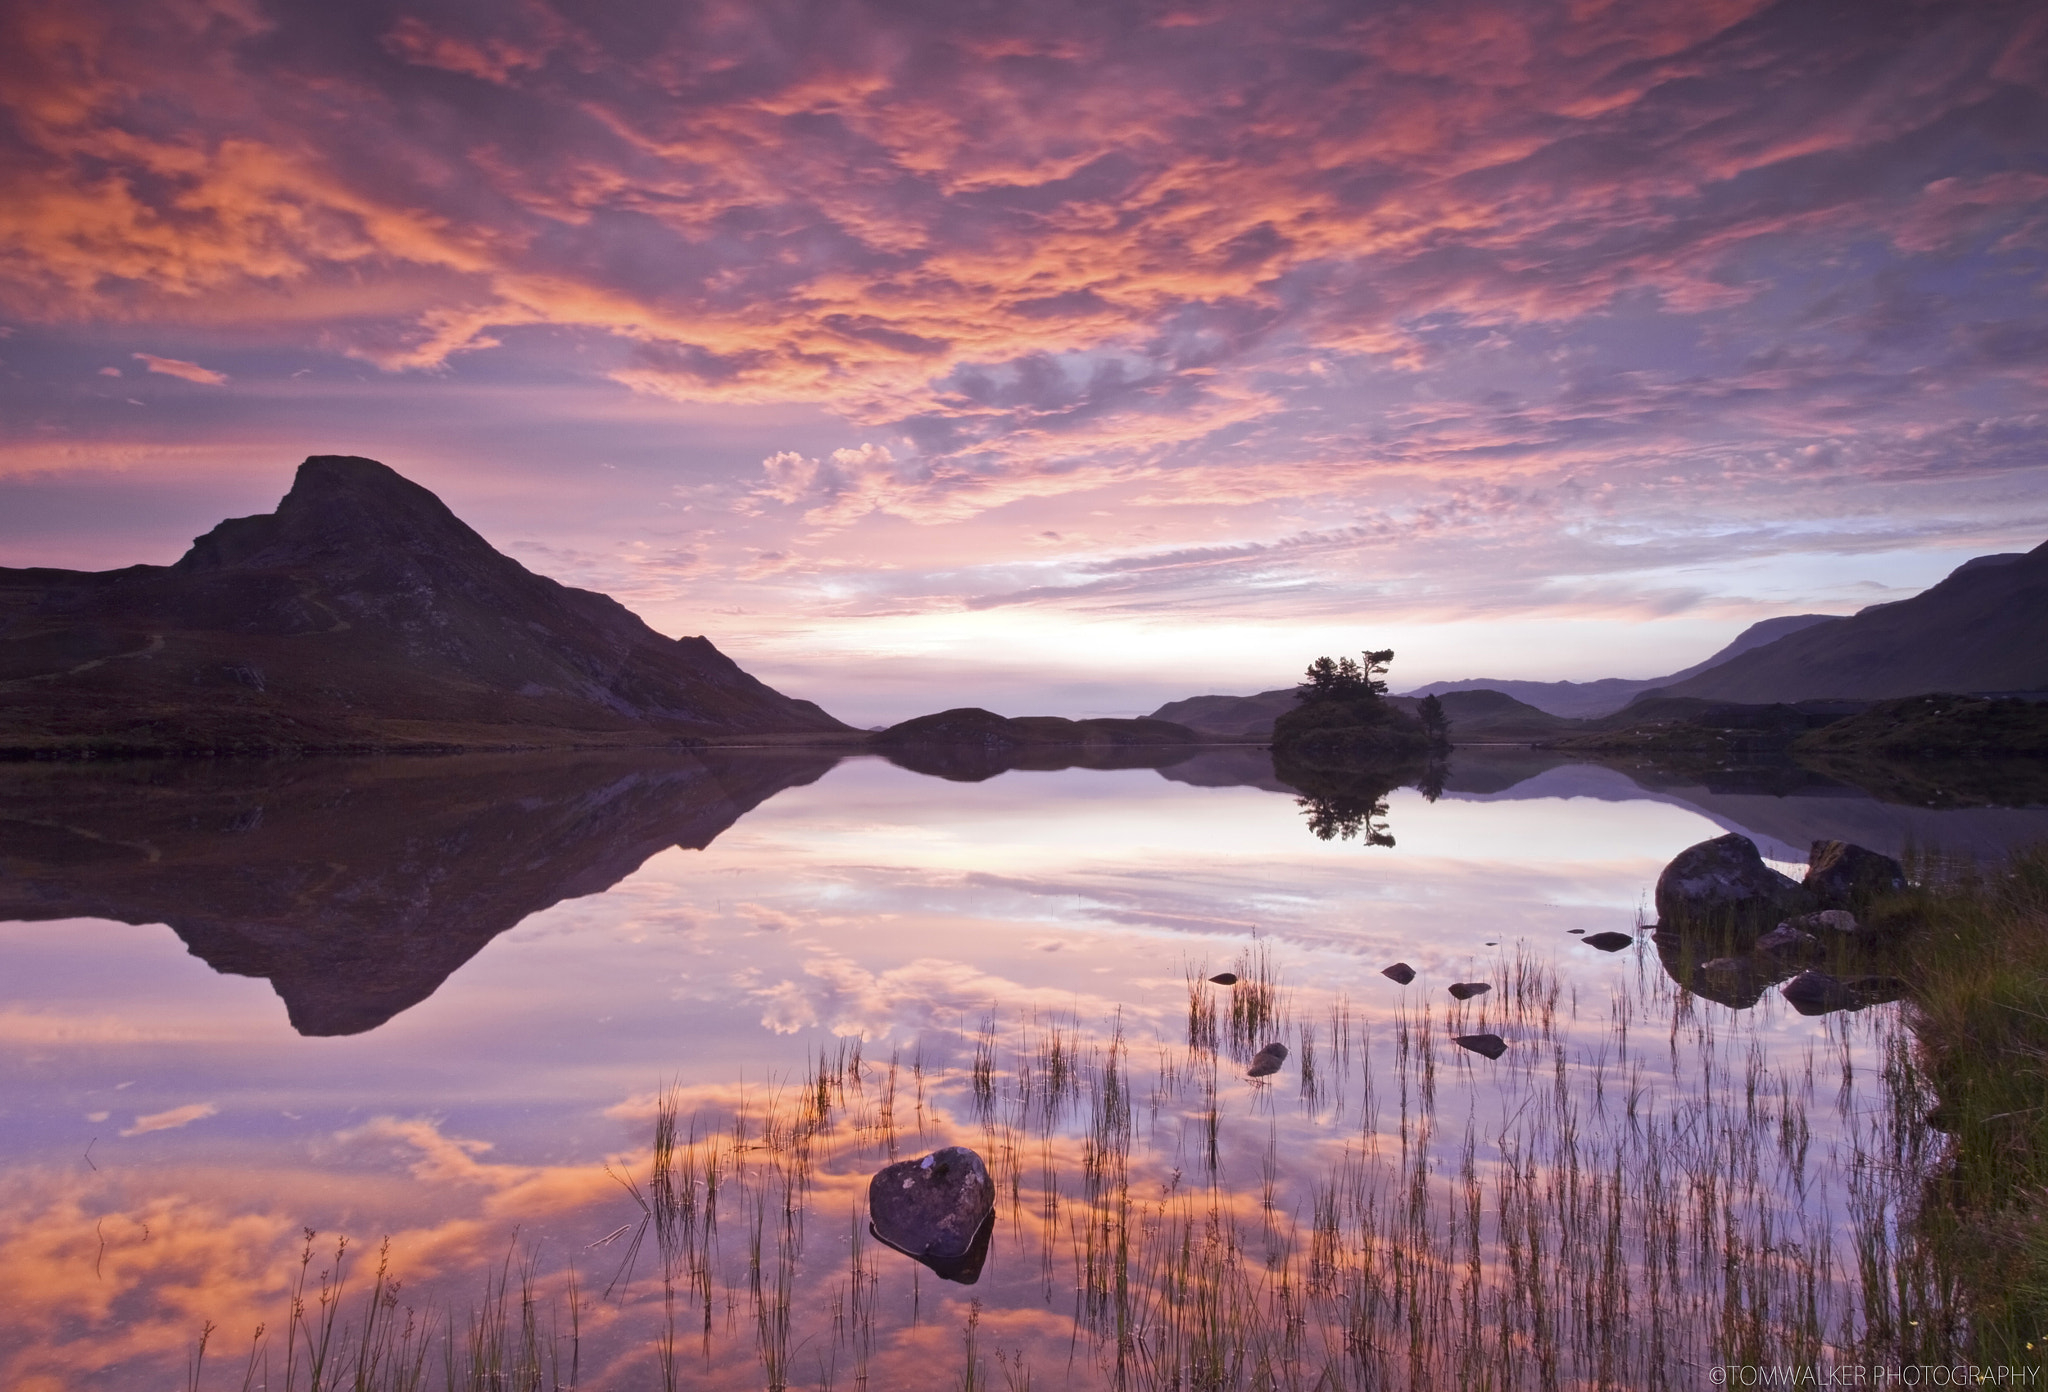 Photograph In Awe at Llyn Cregennen by Tom Walker on 500px